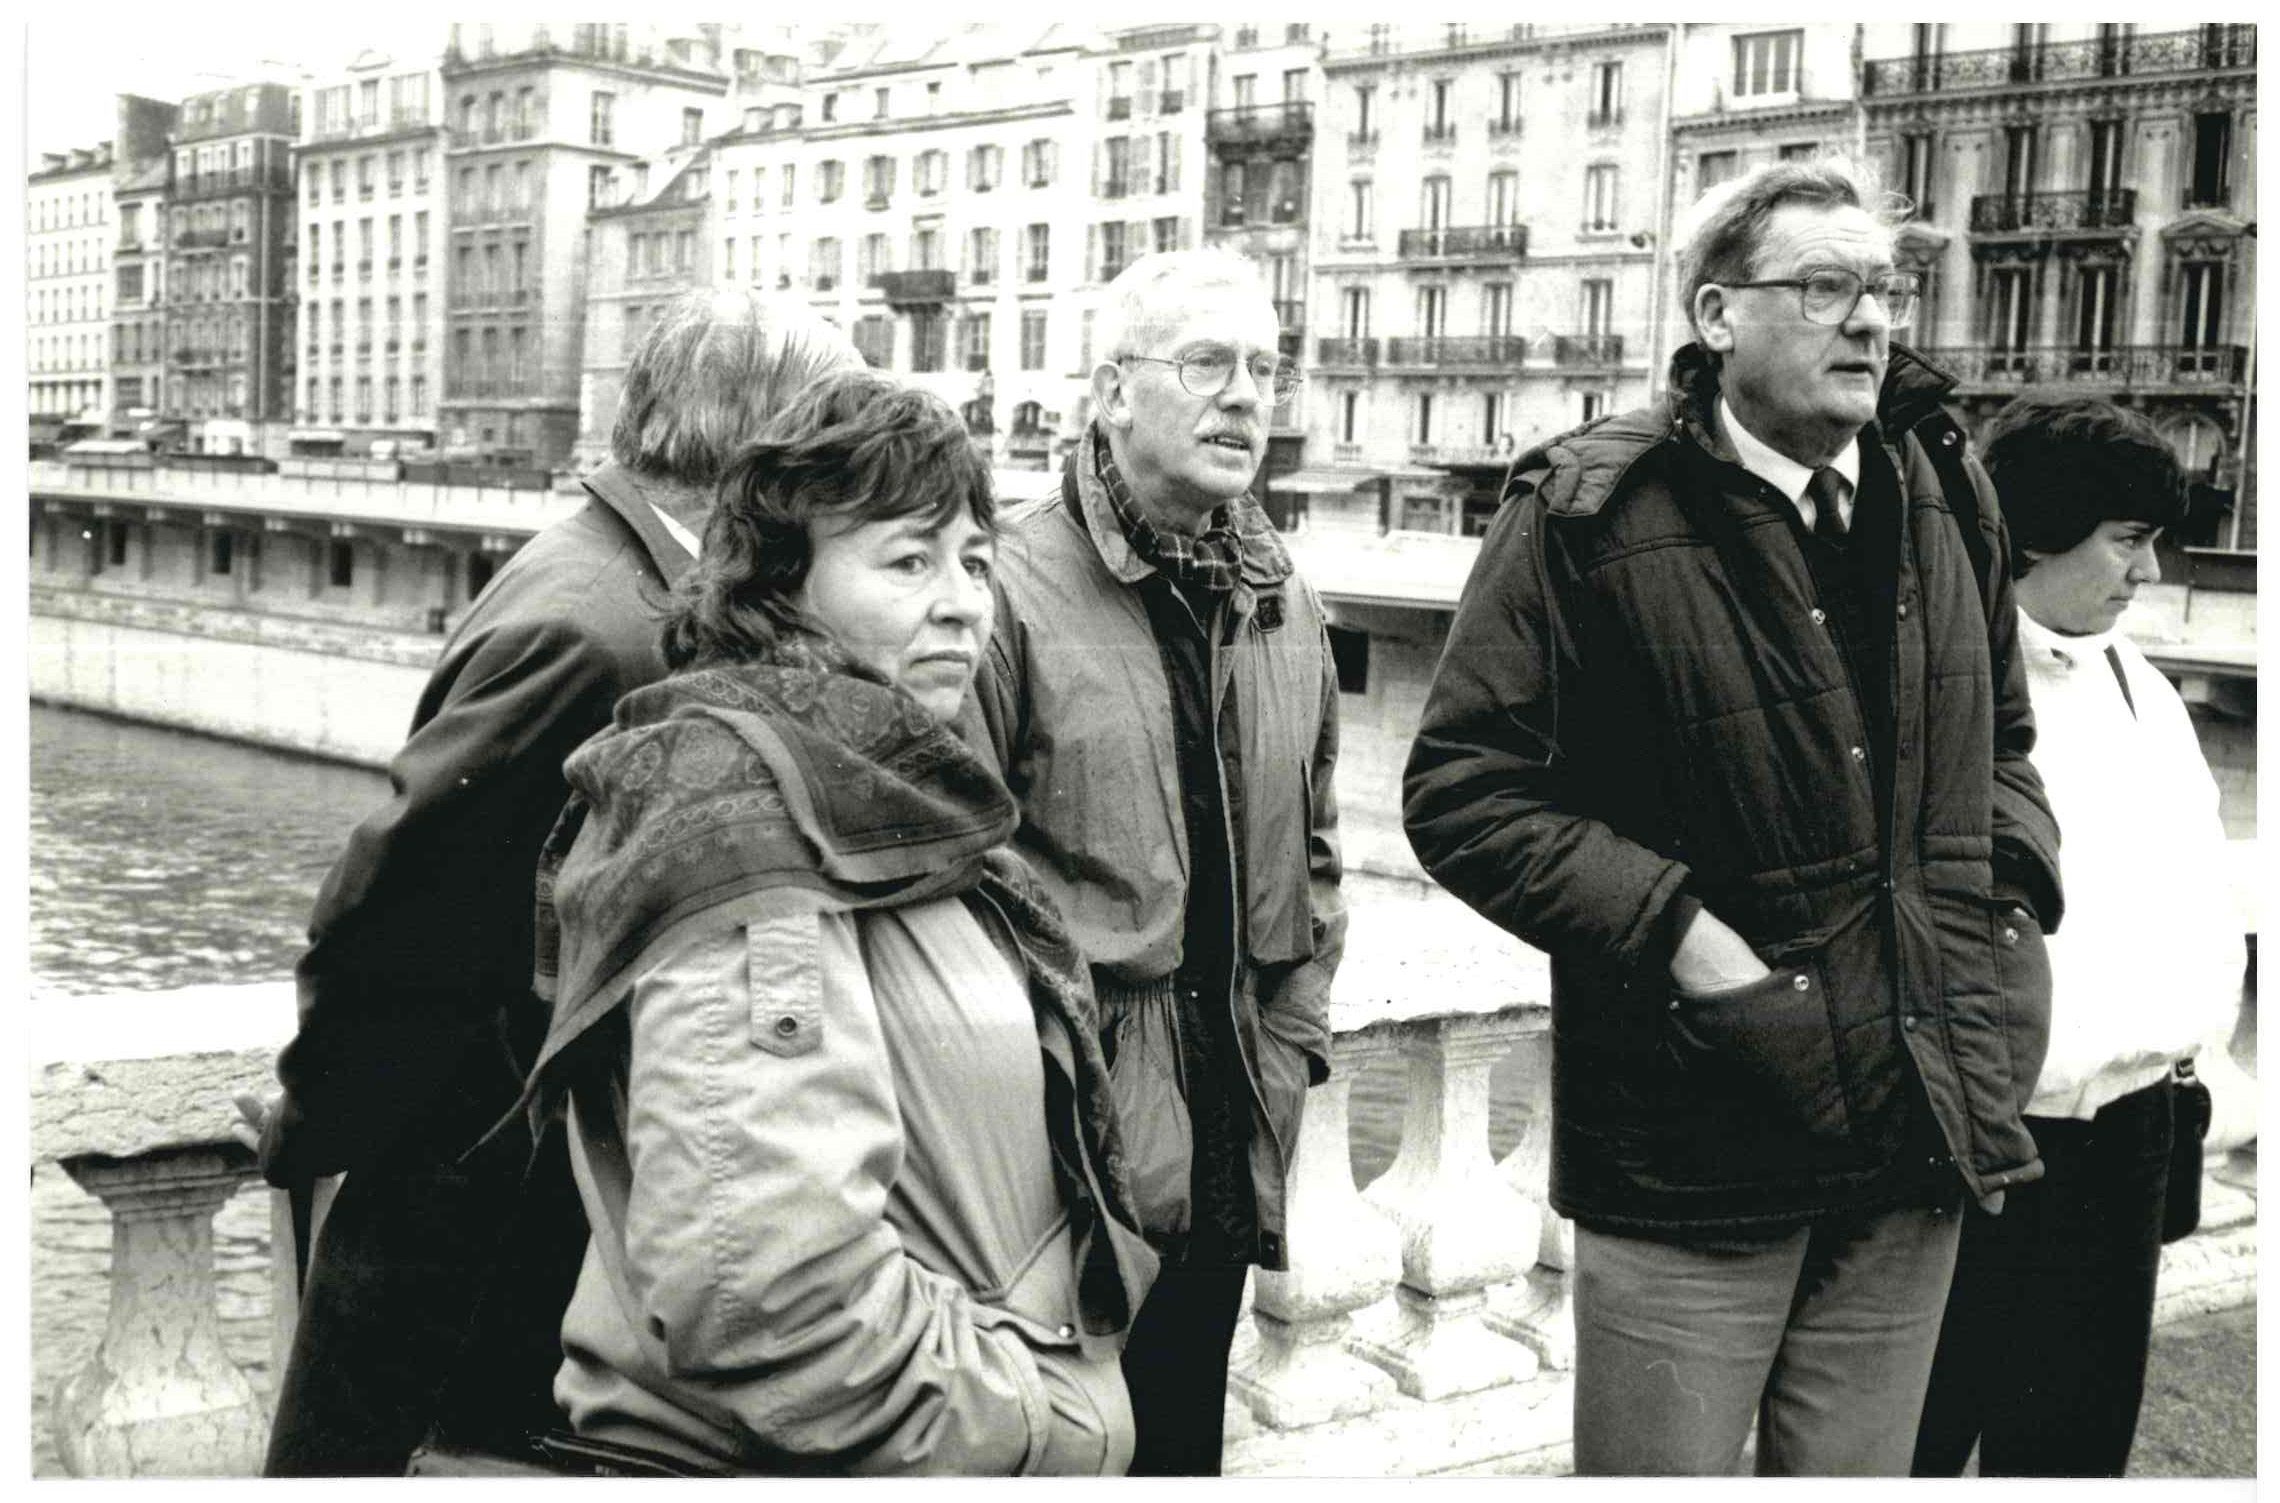 00515-Paris, Wendy Taylor, David Grey, Bill Blackshaw.jpg